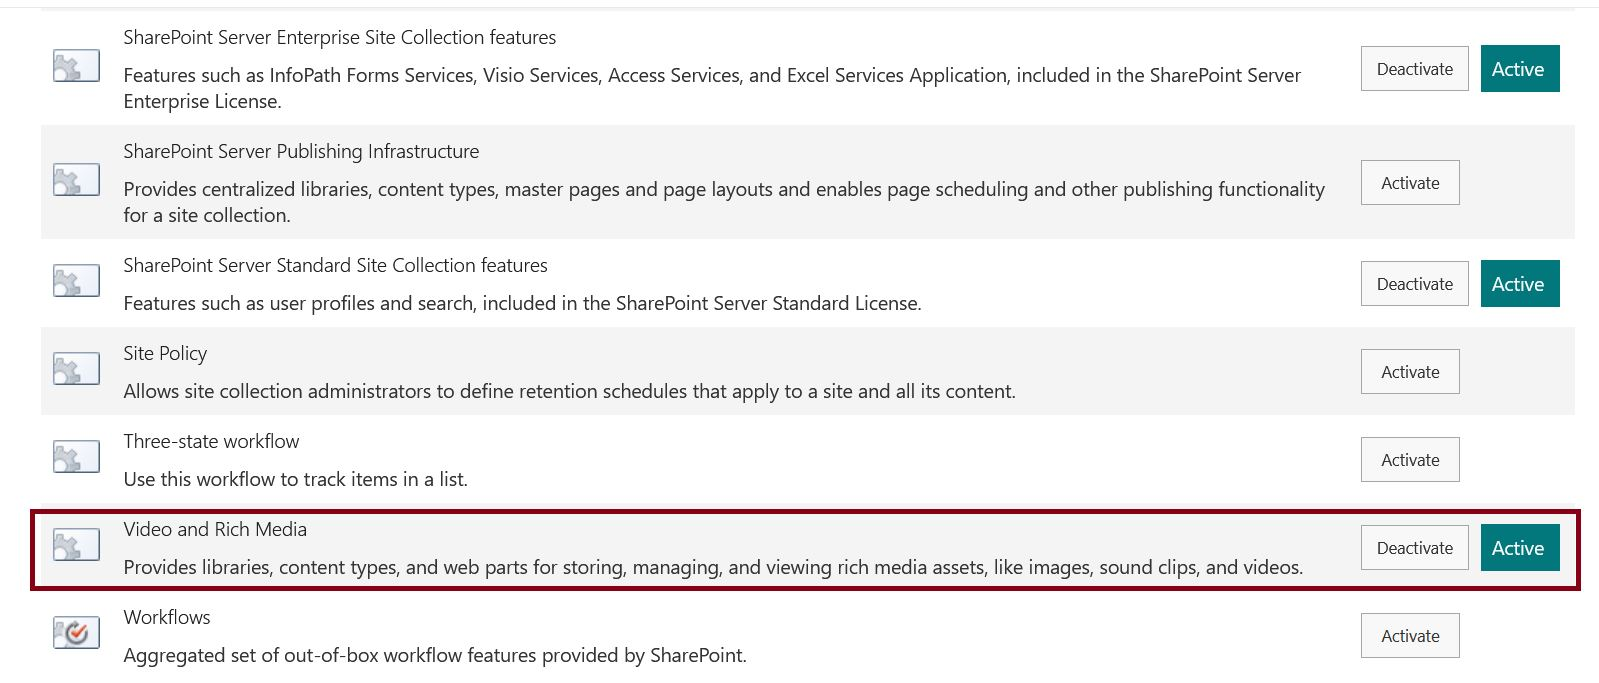 Activate Video and Rich Media site collection feature in SharePoint Online communication site